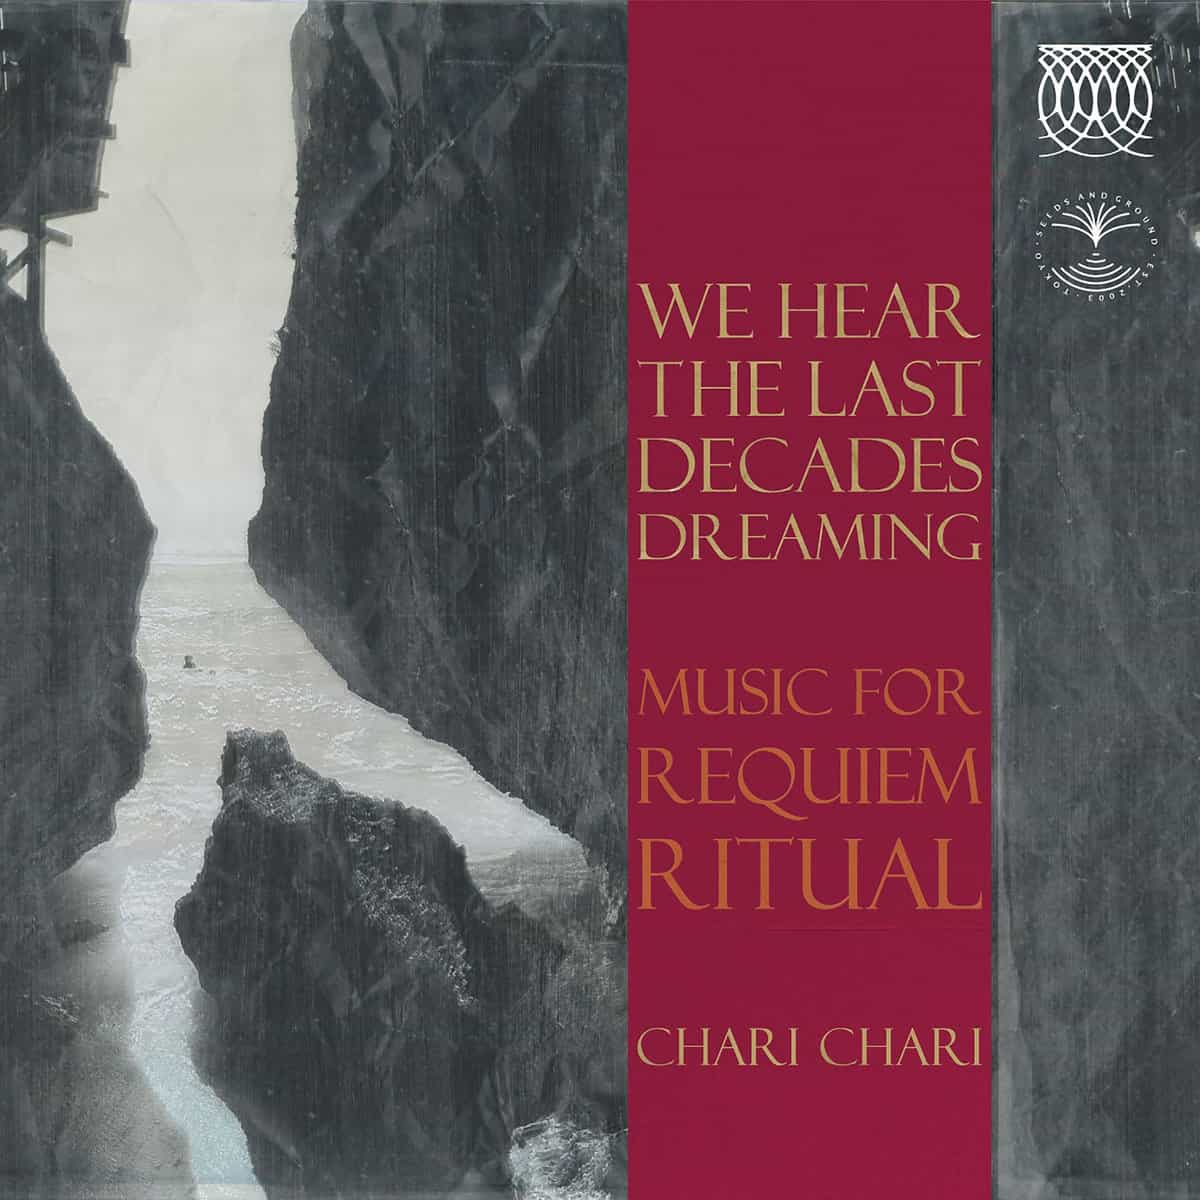 Artwrok de l'album We hear the last decades dreaming de Chari Chari